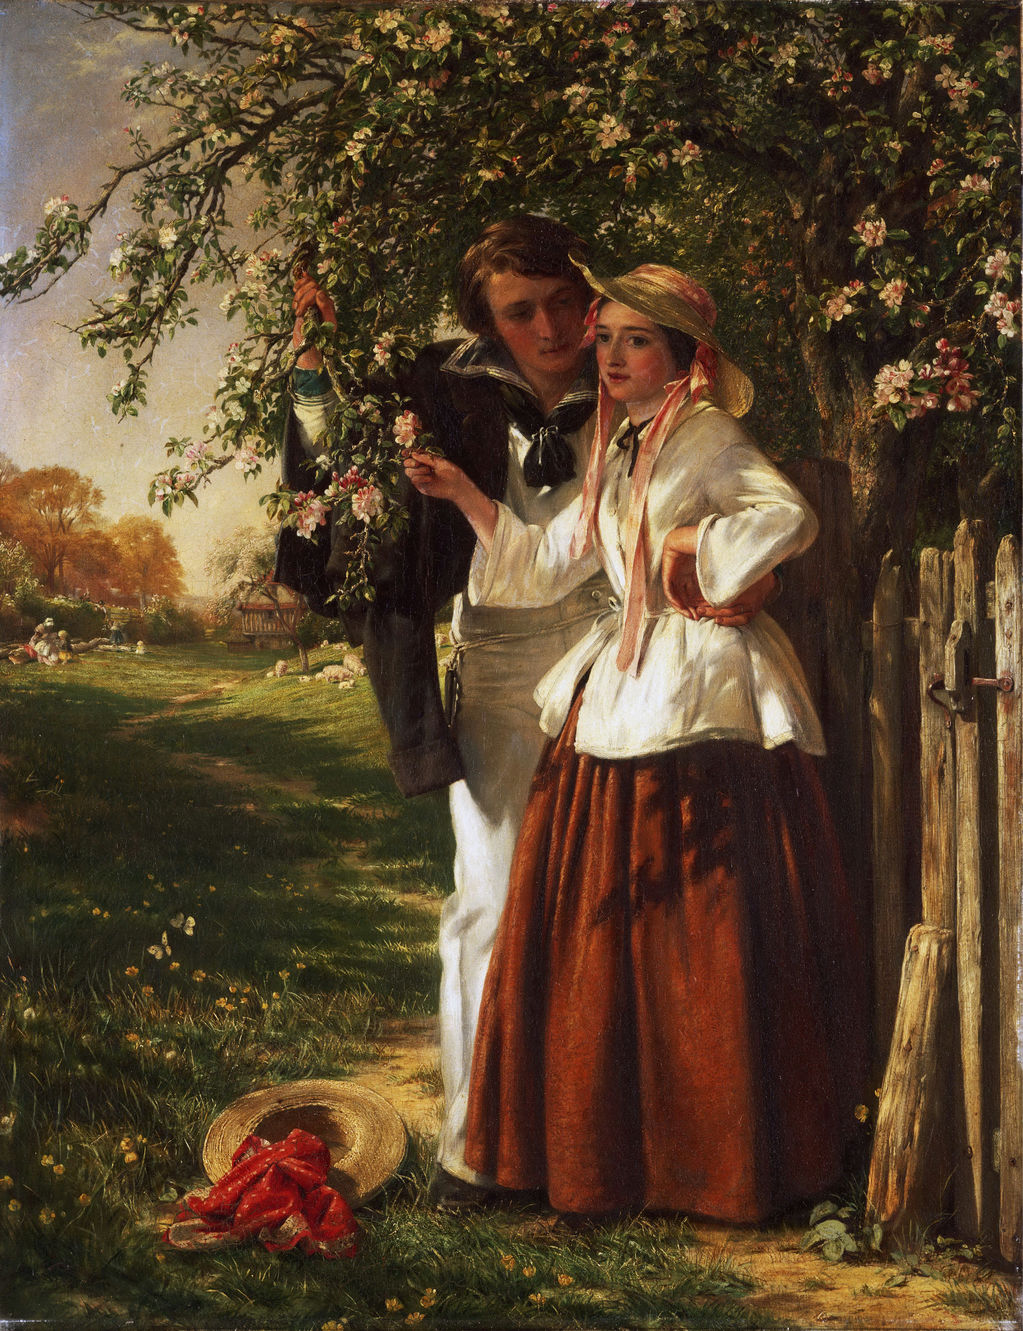 Lovers under a Blossom Tree by John Callcott Horsley (English, 1817 - 1903)